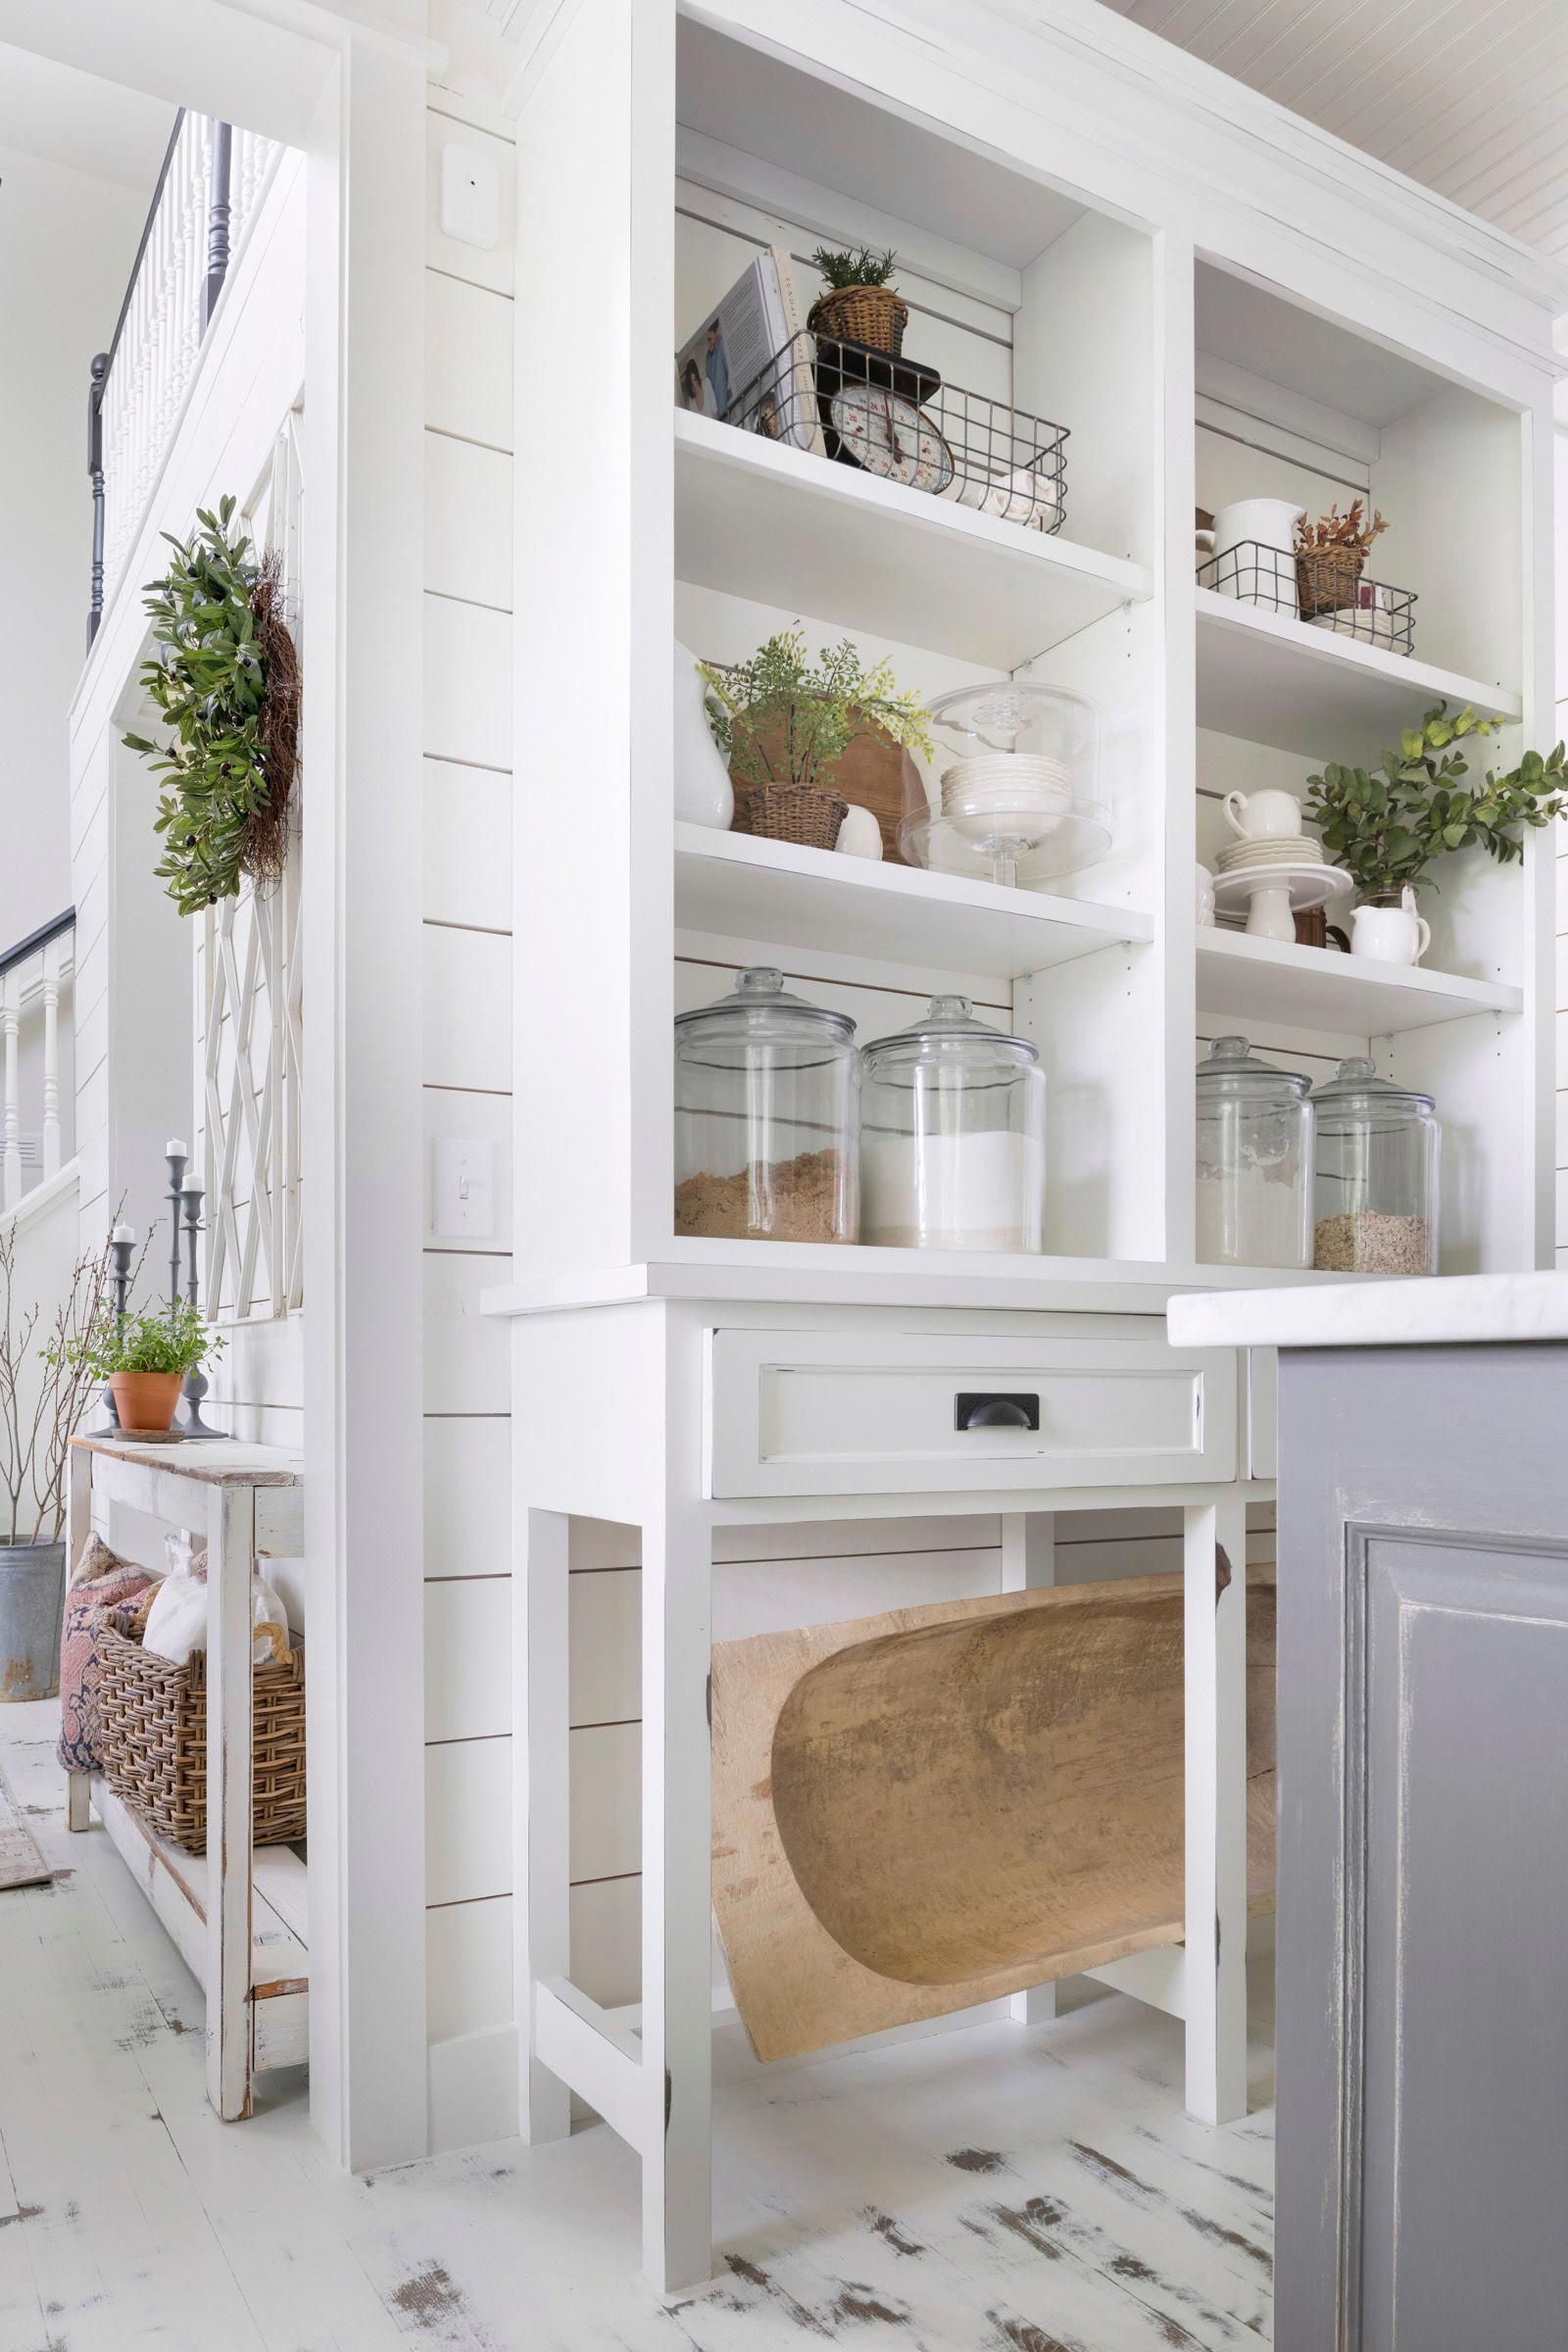 Outstanding kitchen decorating are available on our site